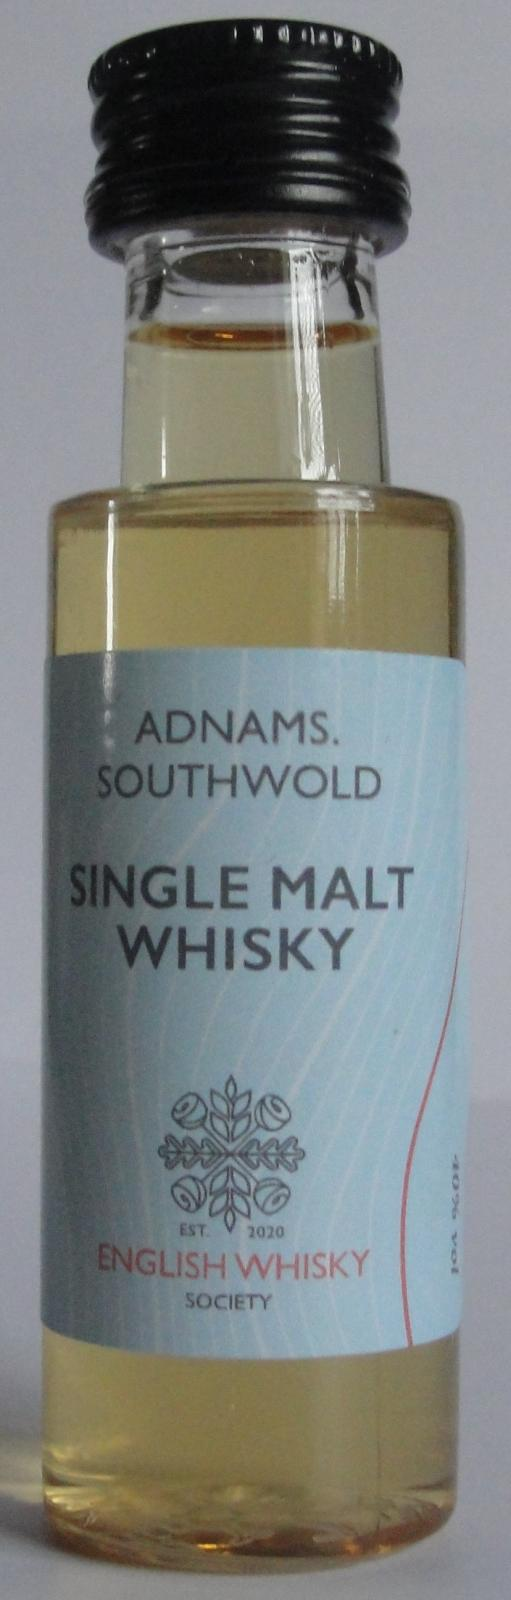 Adnams Single Malt Whisky TDT